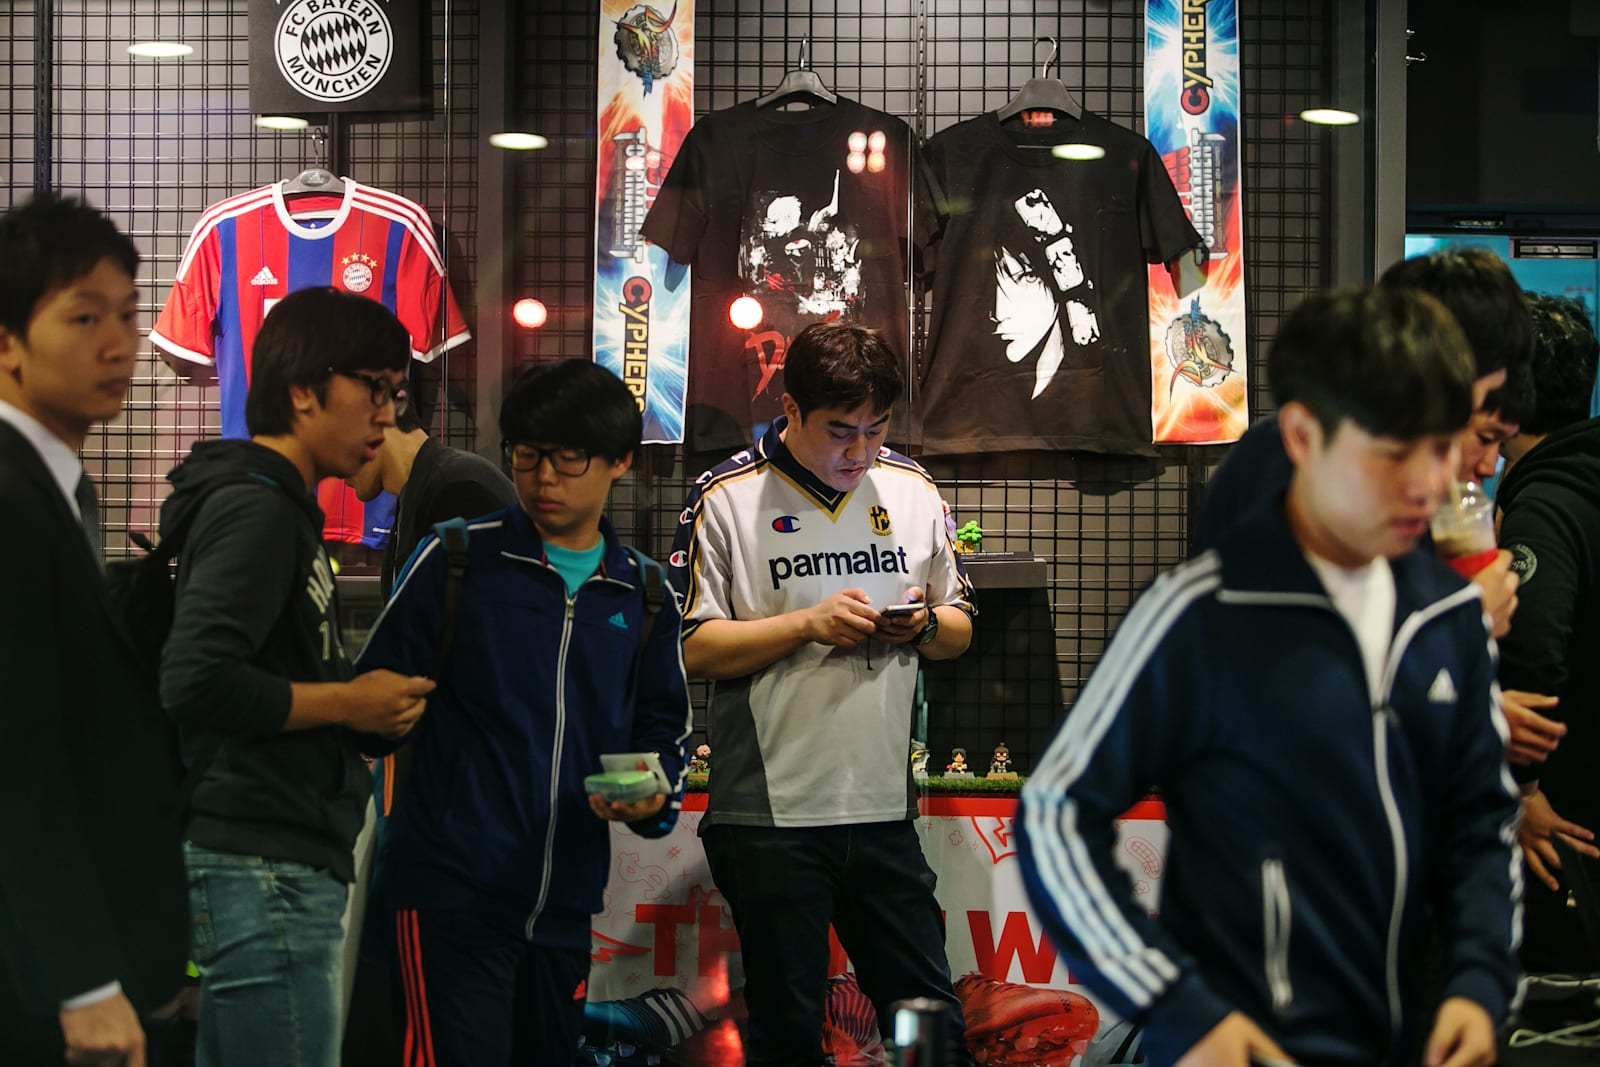 Gamers Compete In The Electronic Arts Inc. (EA) Sports FIFA Online Championship Final